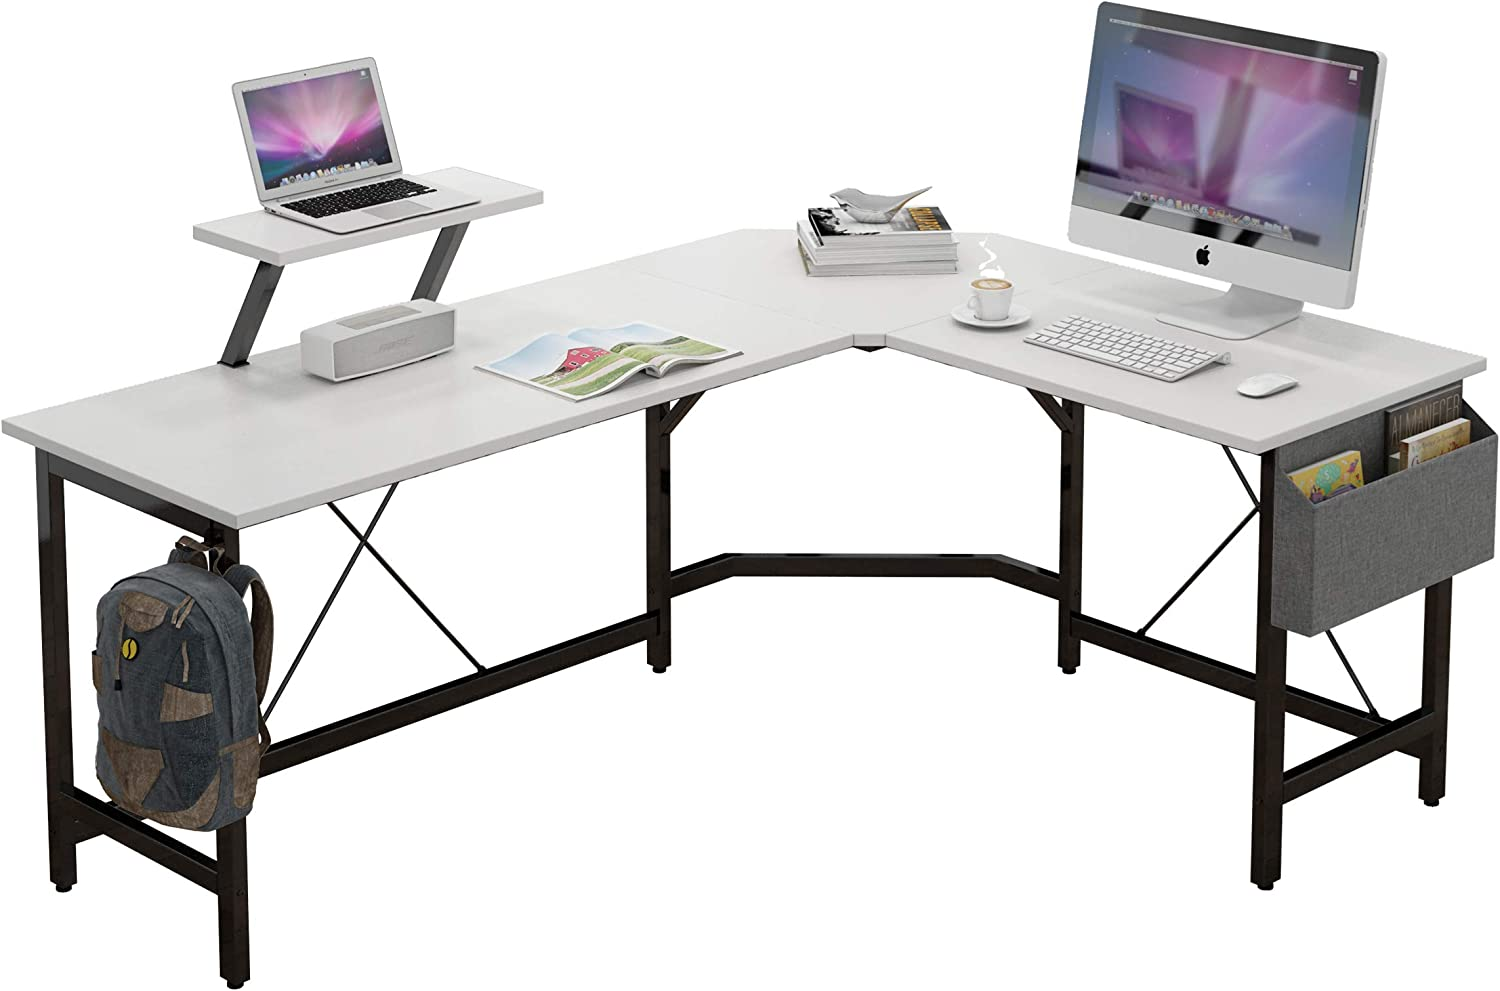 L Shaped Corner Desk 59 inches Computer Desk with Monitor Stand Home Office Desk with Storage Bag and Iron Hook (White)